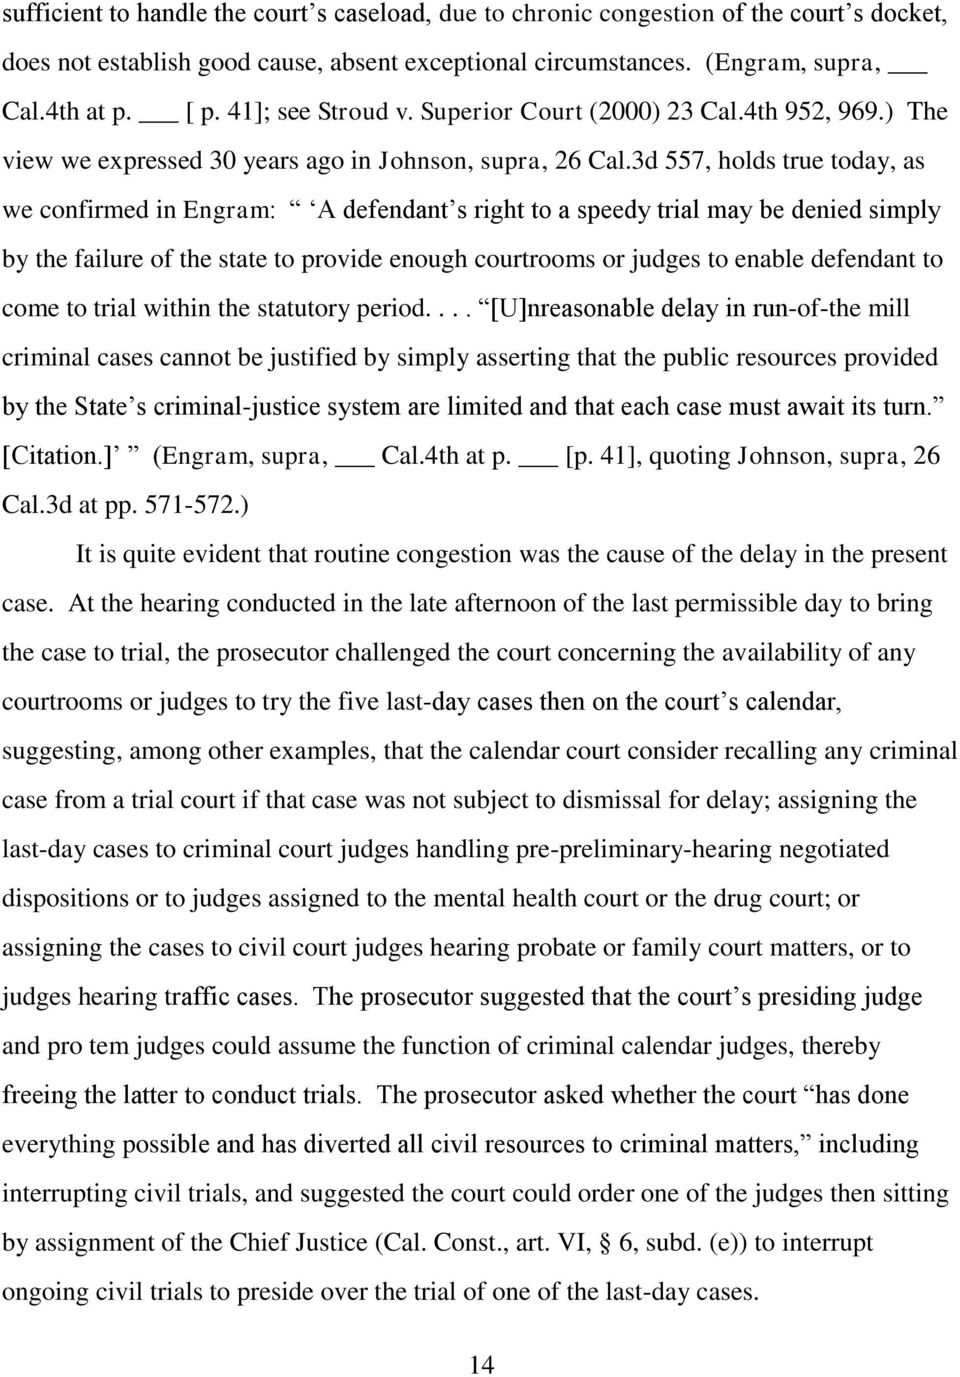 3d 557, holds true today, as we confirmed in Engram: A defendant s right to a speedy trial may be denied simply by the failure of the state to provide enough courtrooms or judges to enable defendant